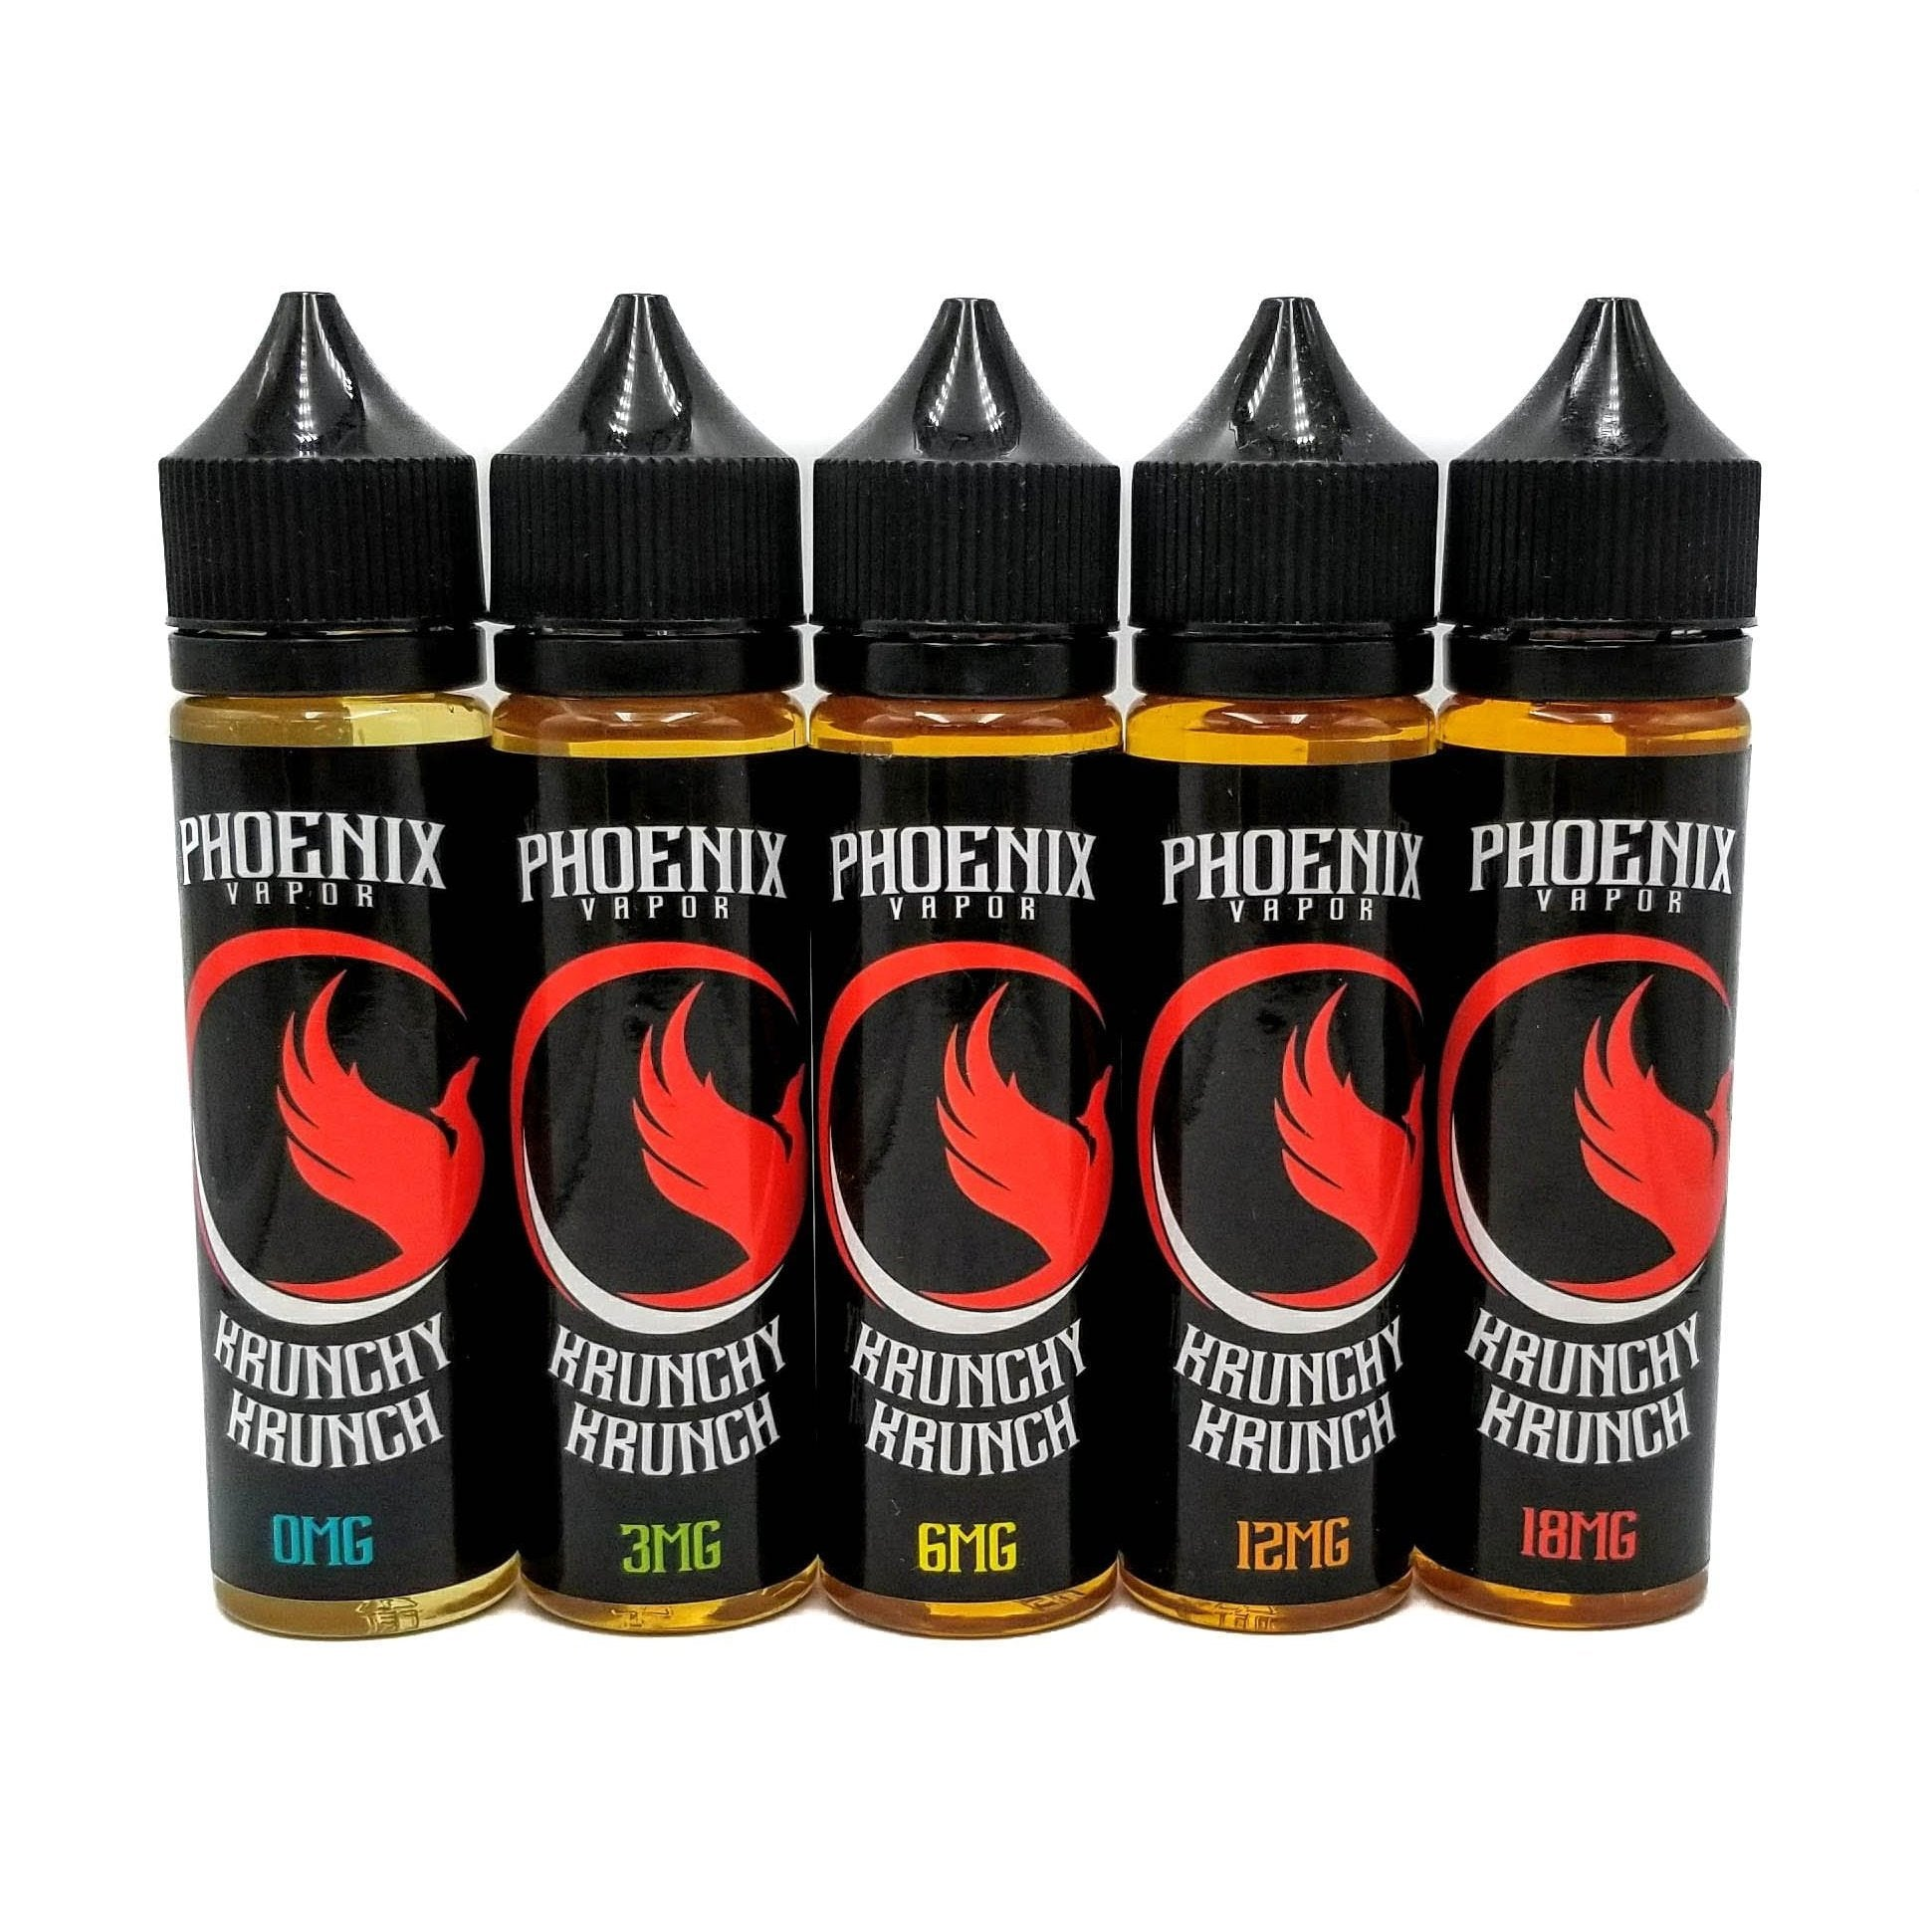 Phoenix Vapor E-Liquid E-Liquid 60 ml / 0 mg Krunchy Krunch by Phoenix Vapor